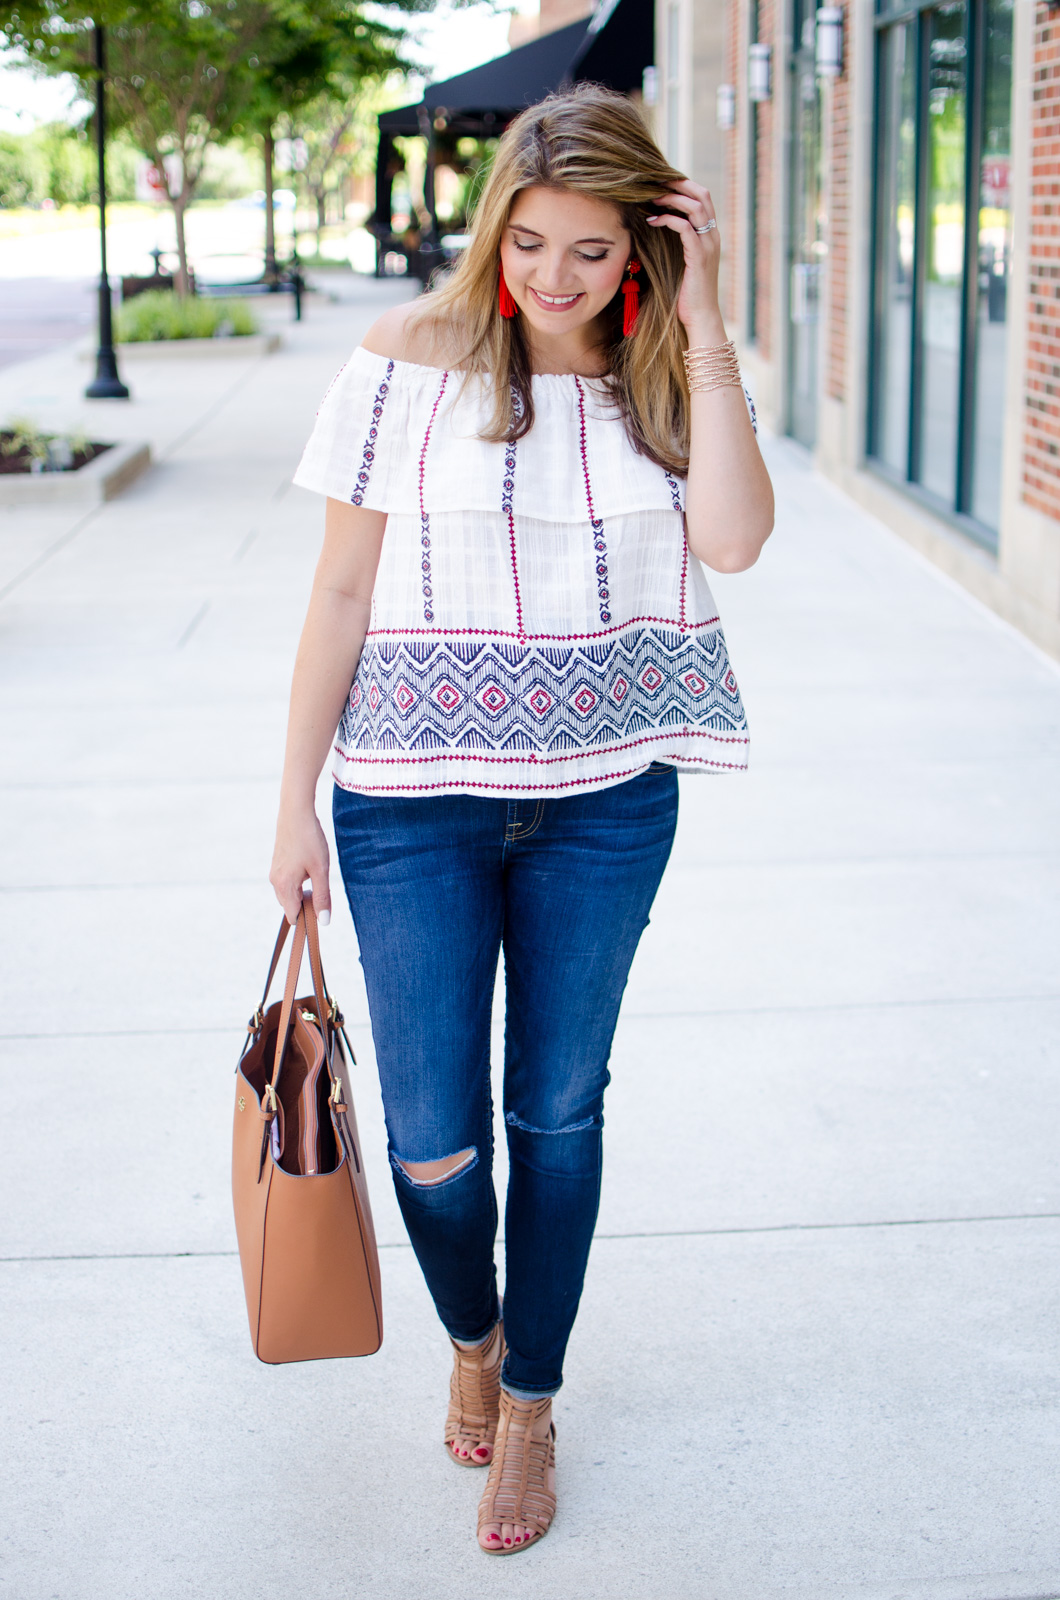 red, white, and blue outfit ideas - off shoulder top outfit | For more Summer outfit ideas, head to bylaurenm.com!